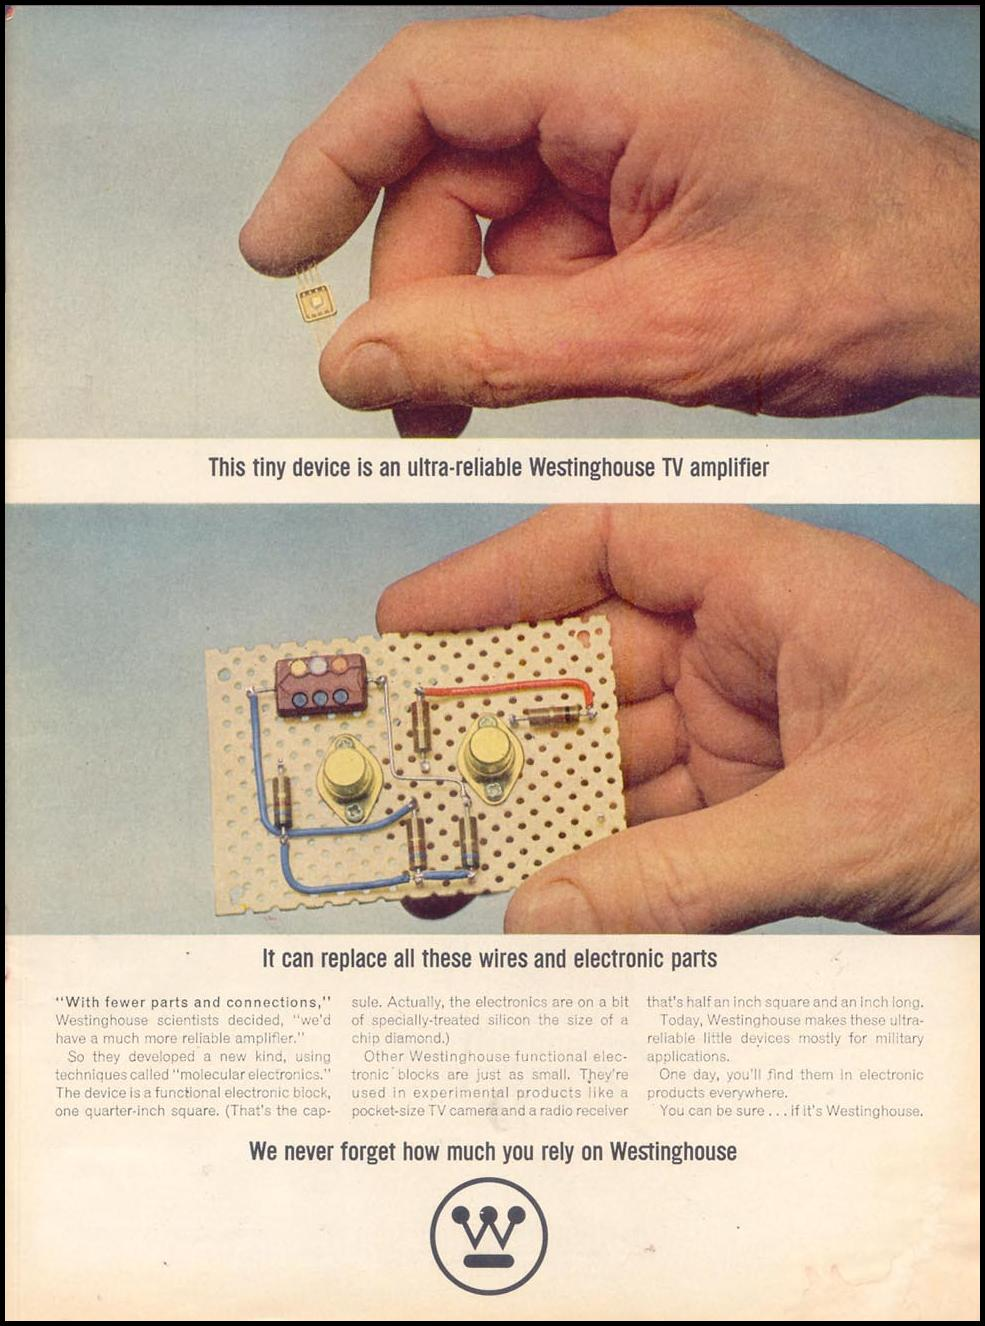 WESTINGHOUSE FUNCTIONAL ELECTRONIC BLOCKS TIME 12/06/1963 p. 3